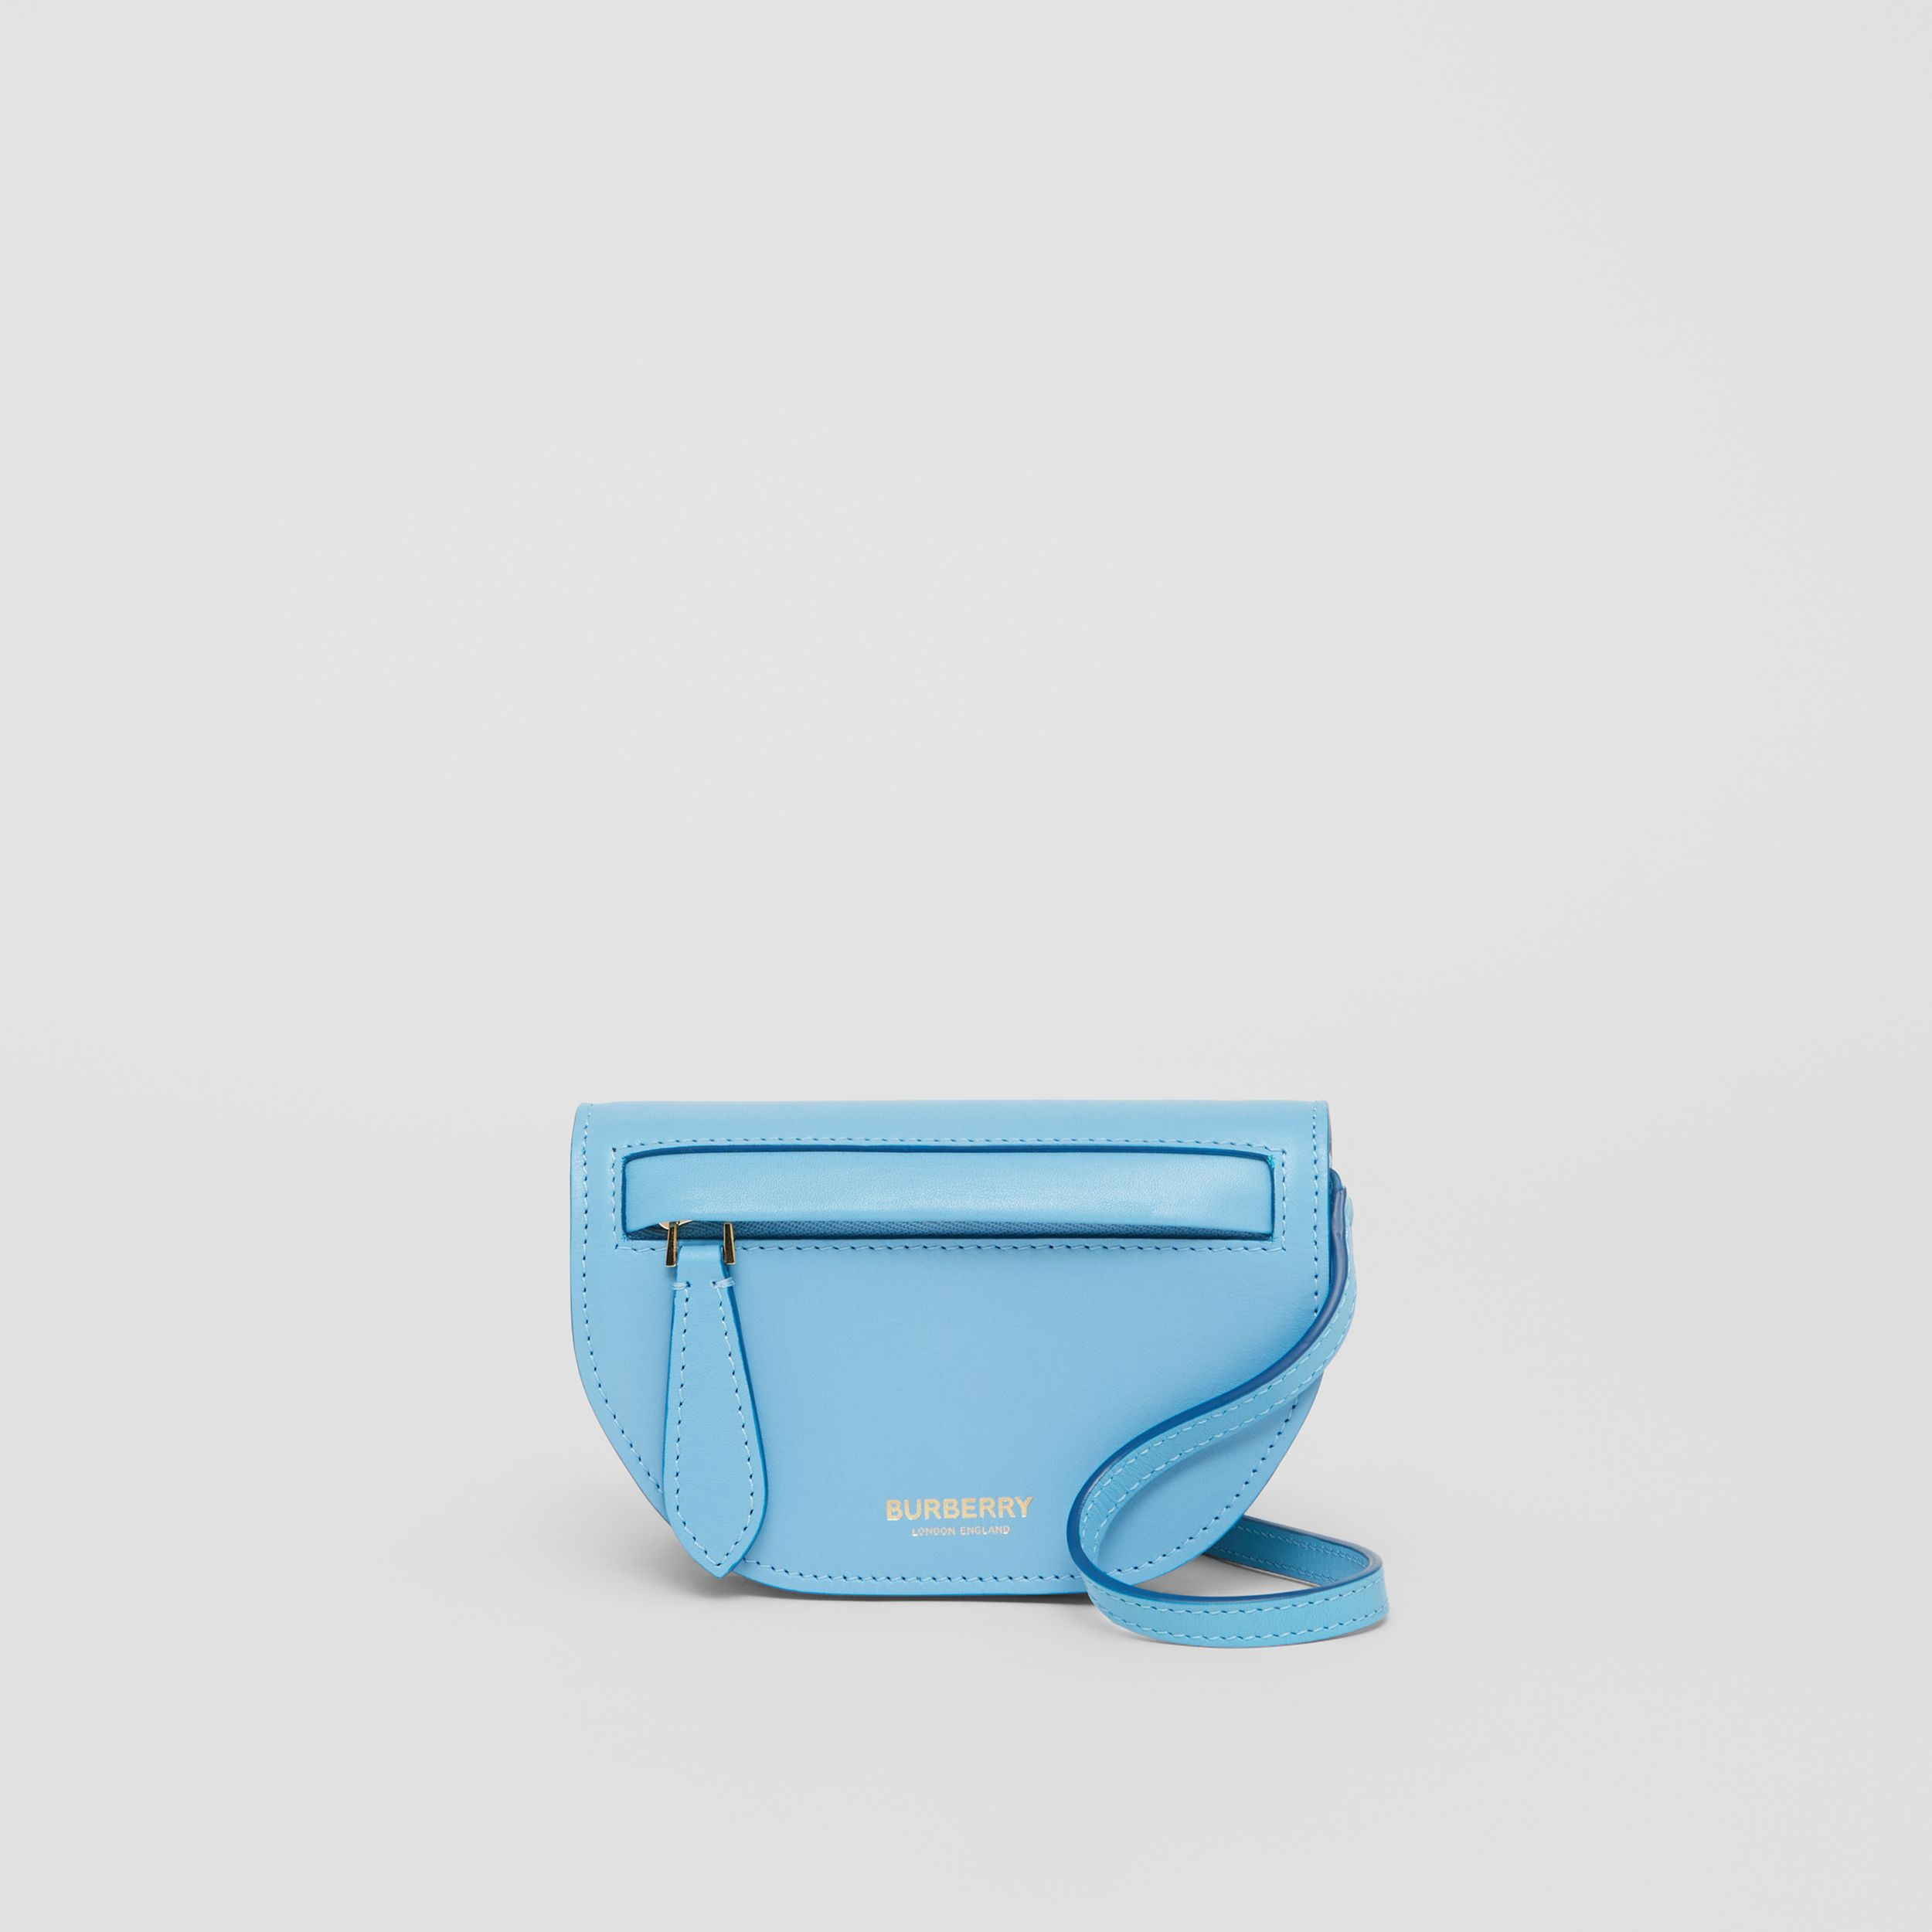 Leather Olympia Card Case with Detachable Strap in Blue Topaz | Burberry Canada - 1